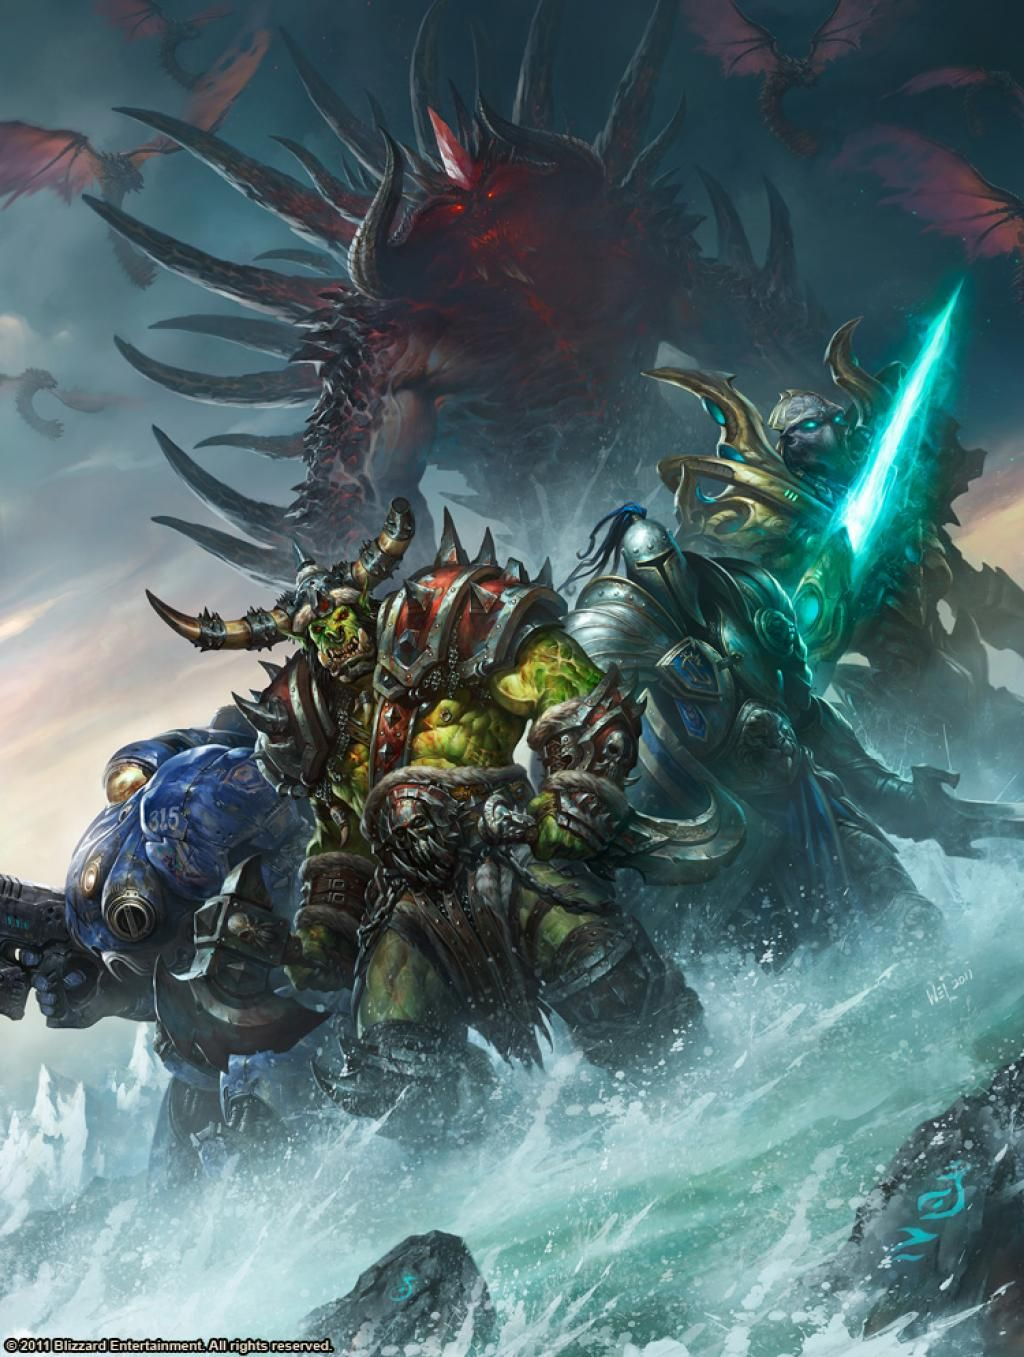 Libros De World Of Warcraft Pin De Bernardo Cruzeiro Paschoal Em Blizzard Pinterest